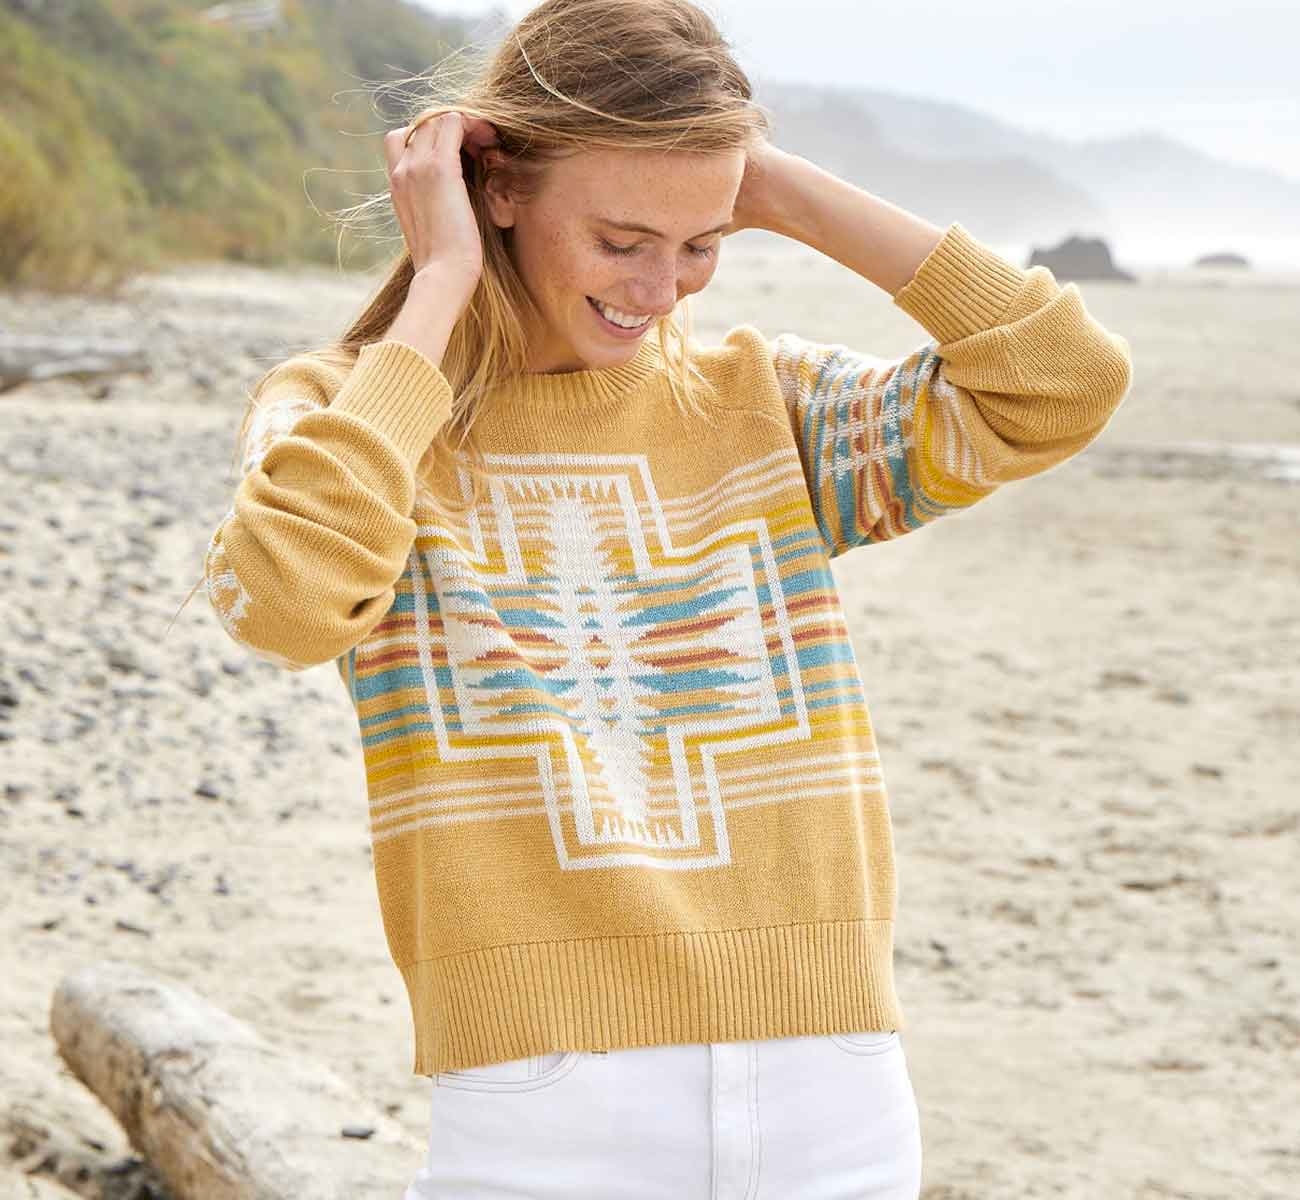 Female model in a yellow pullover sweater with a motif shown in the front